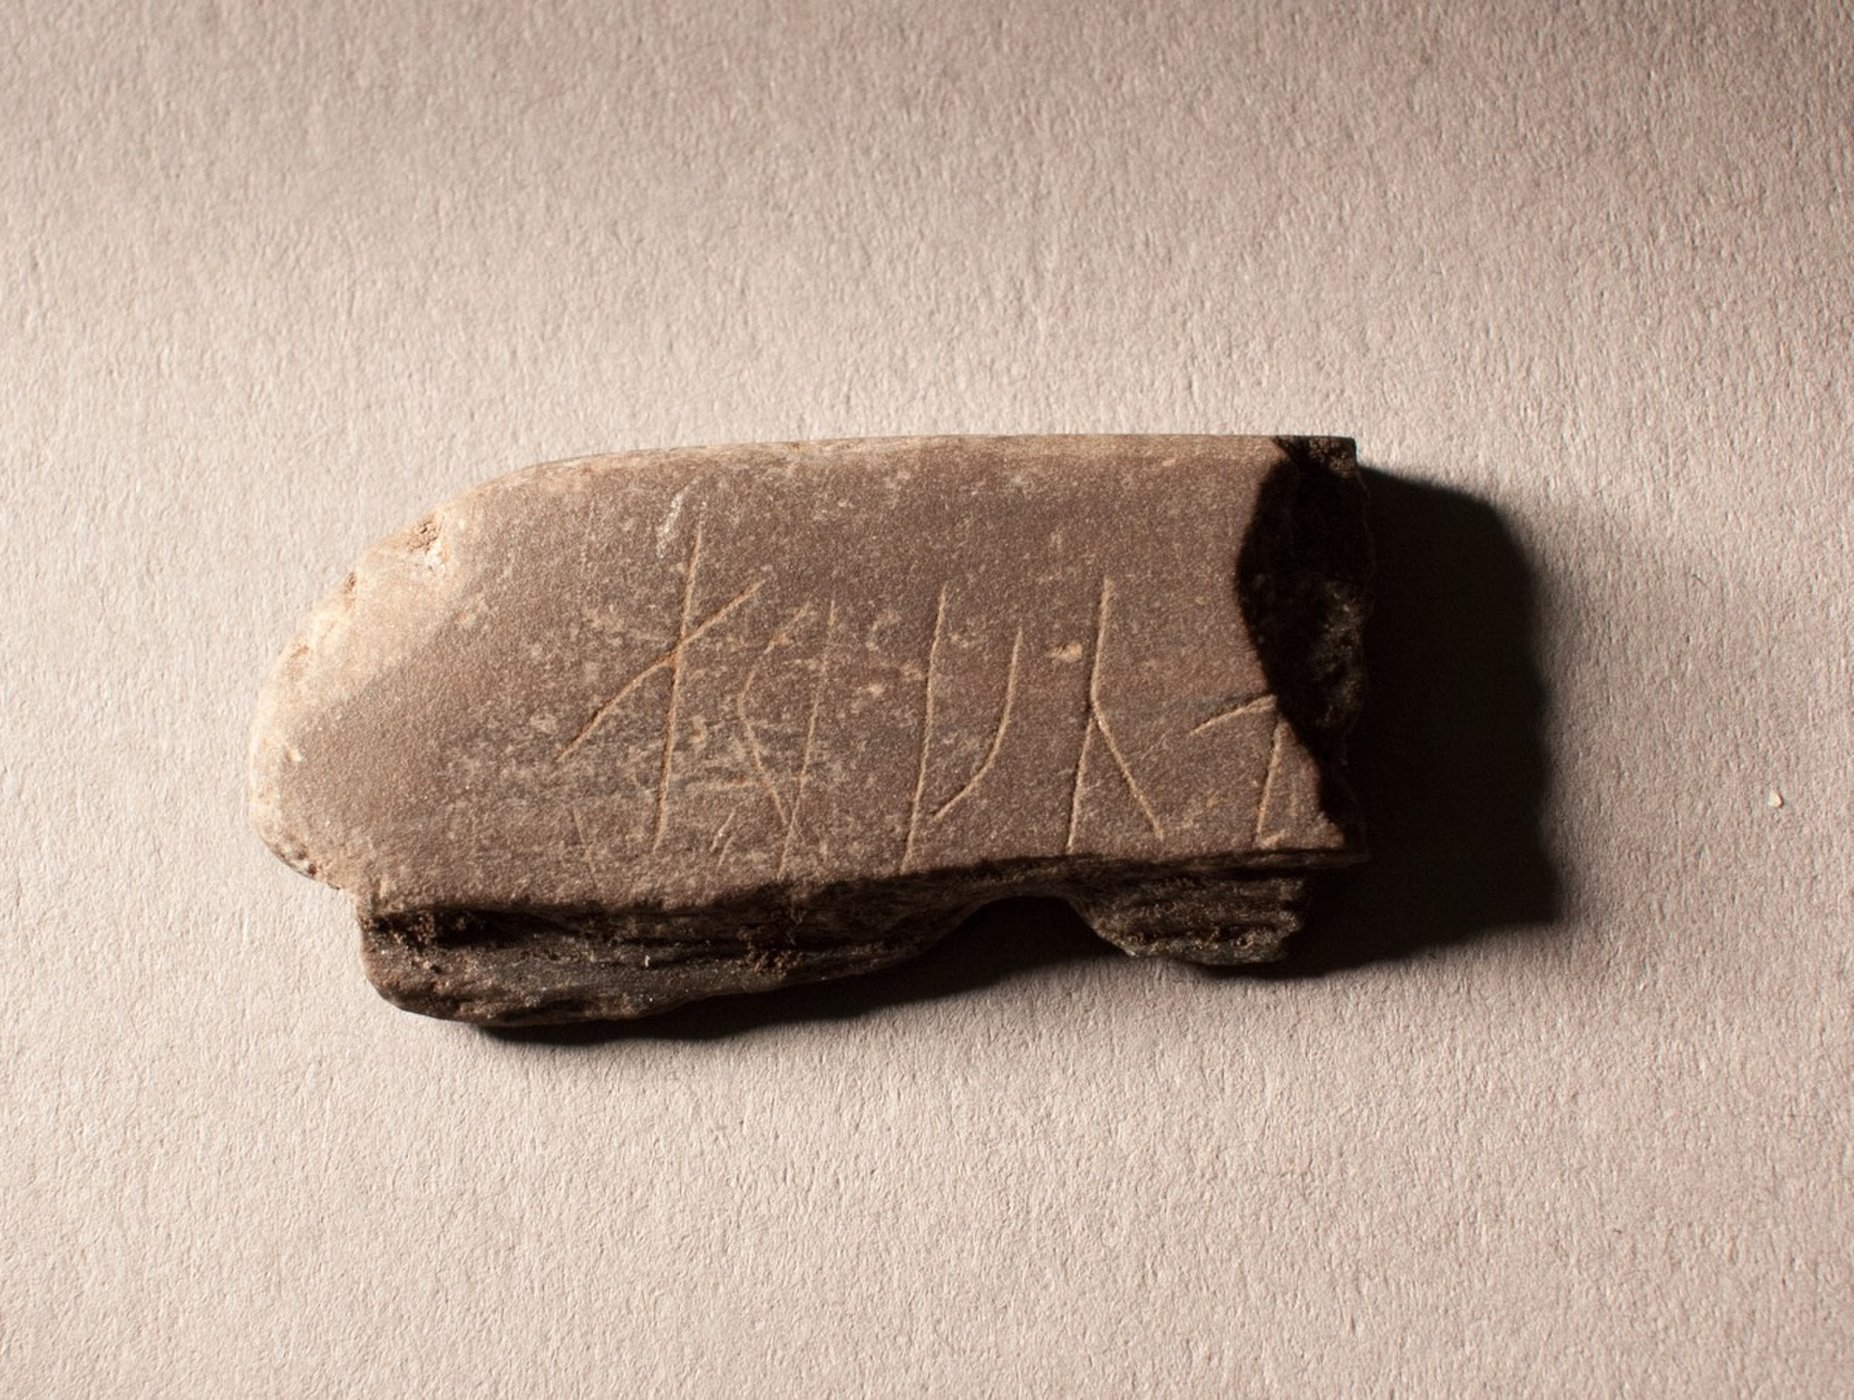 Viking era stone carved with runes found in norway